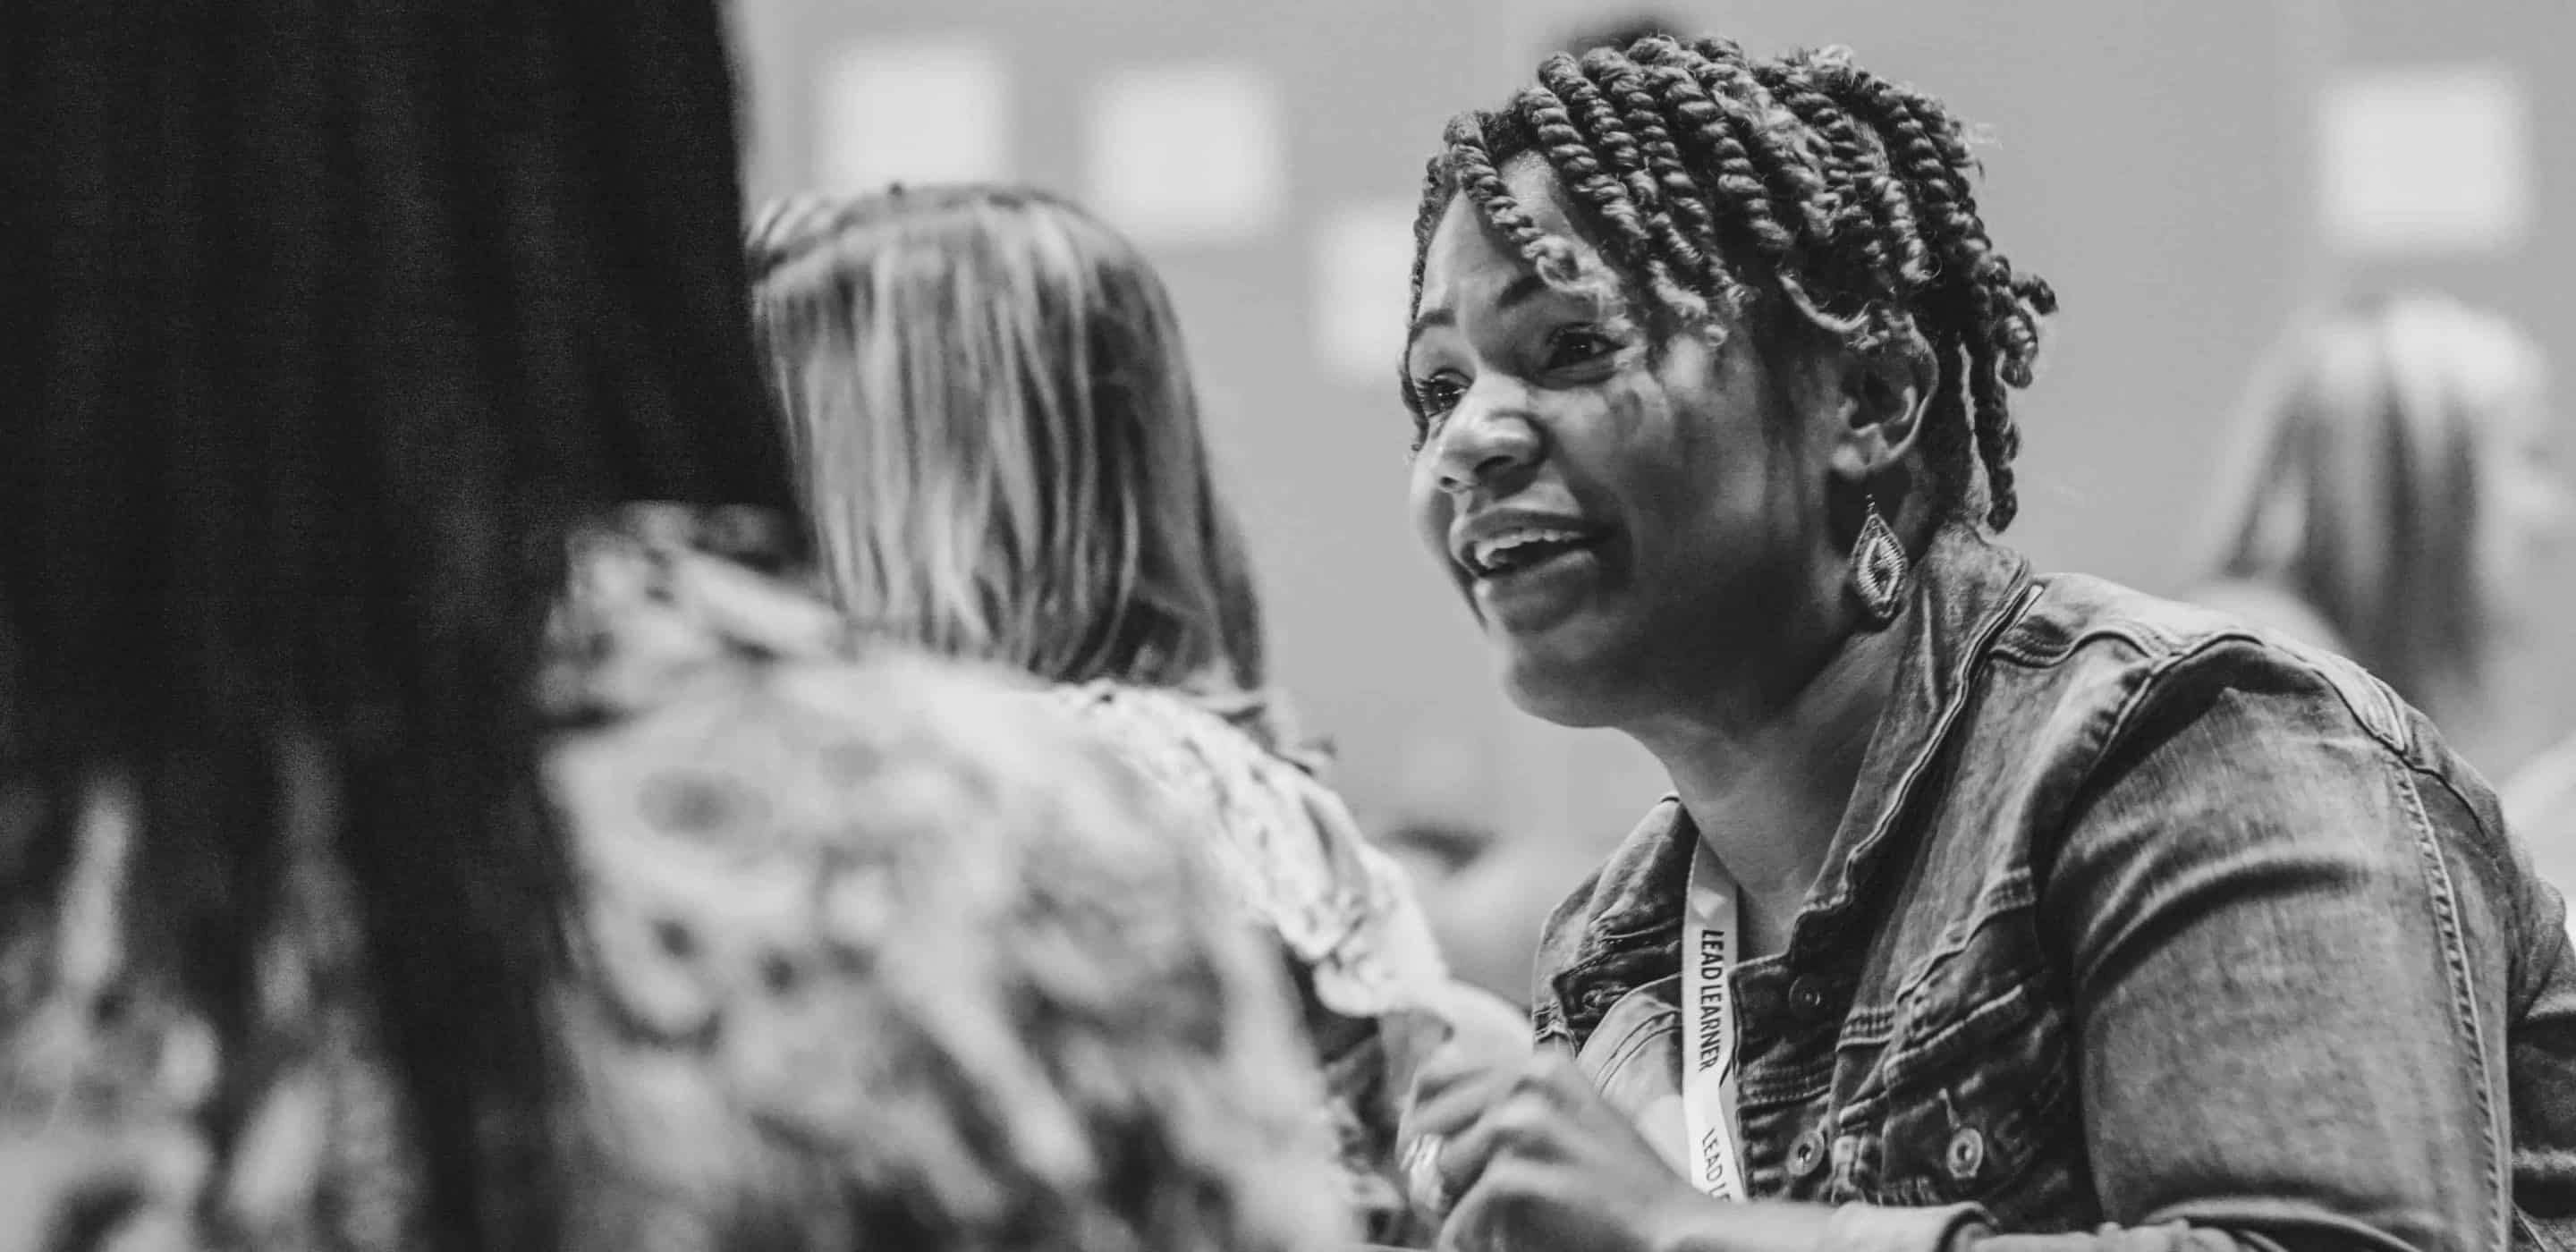 Two Chicago leading educators discuss equity